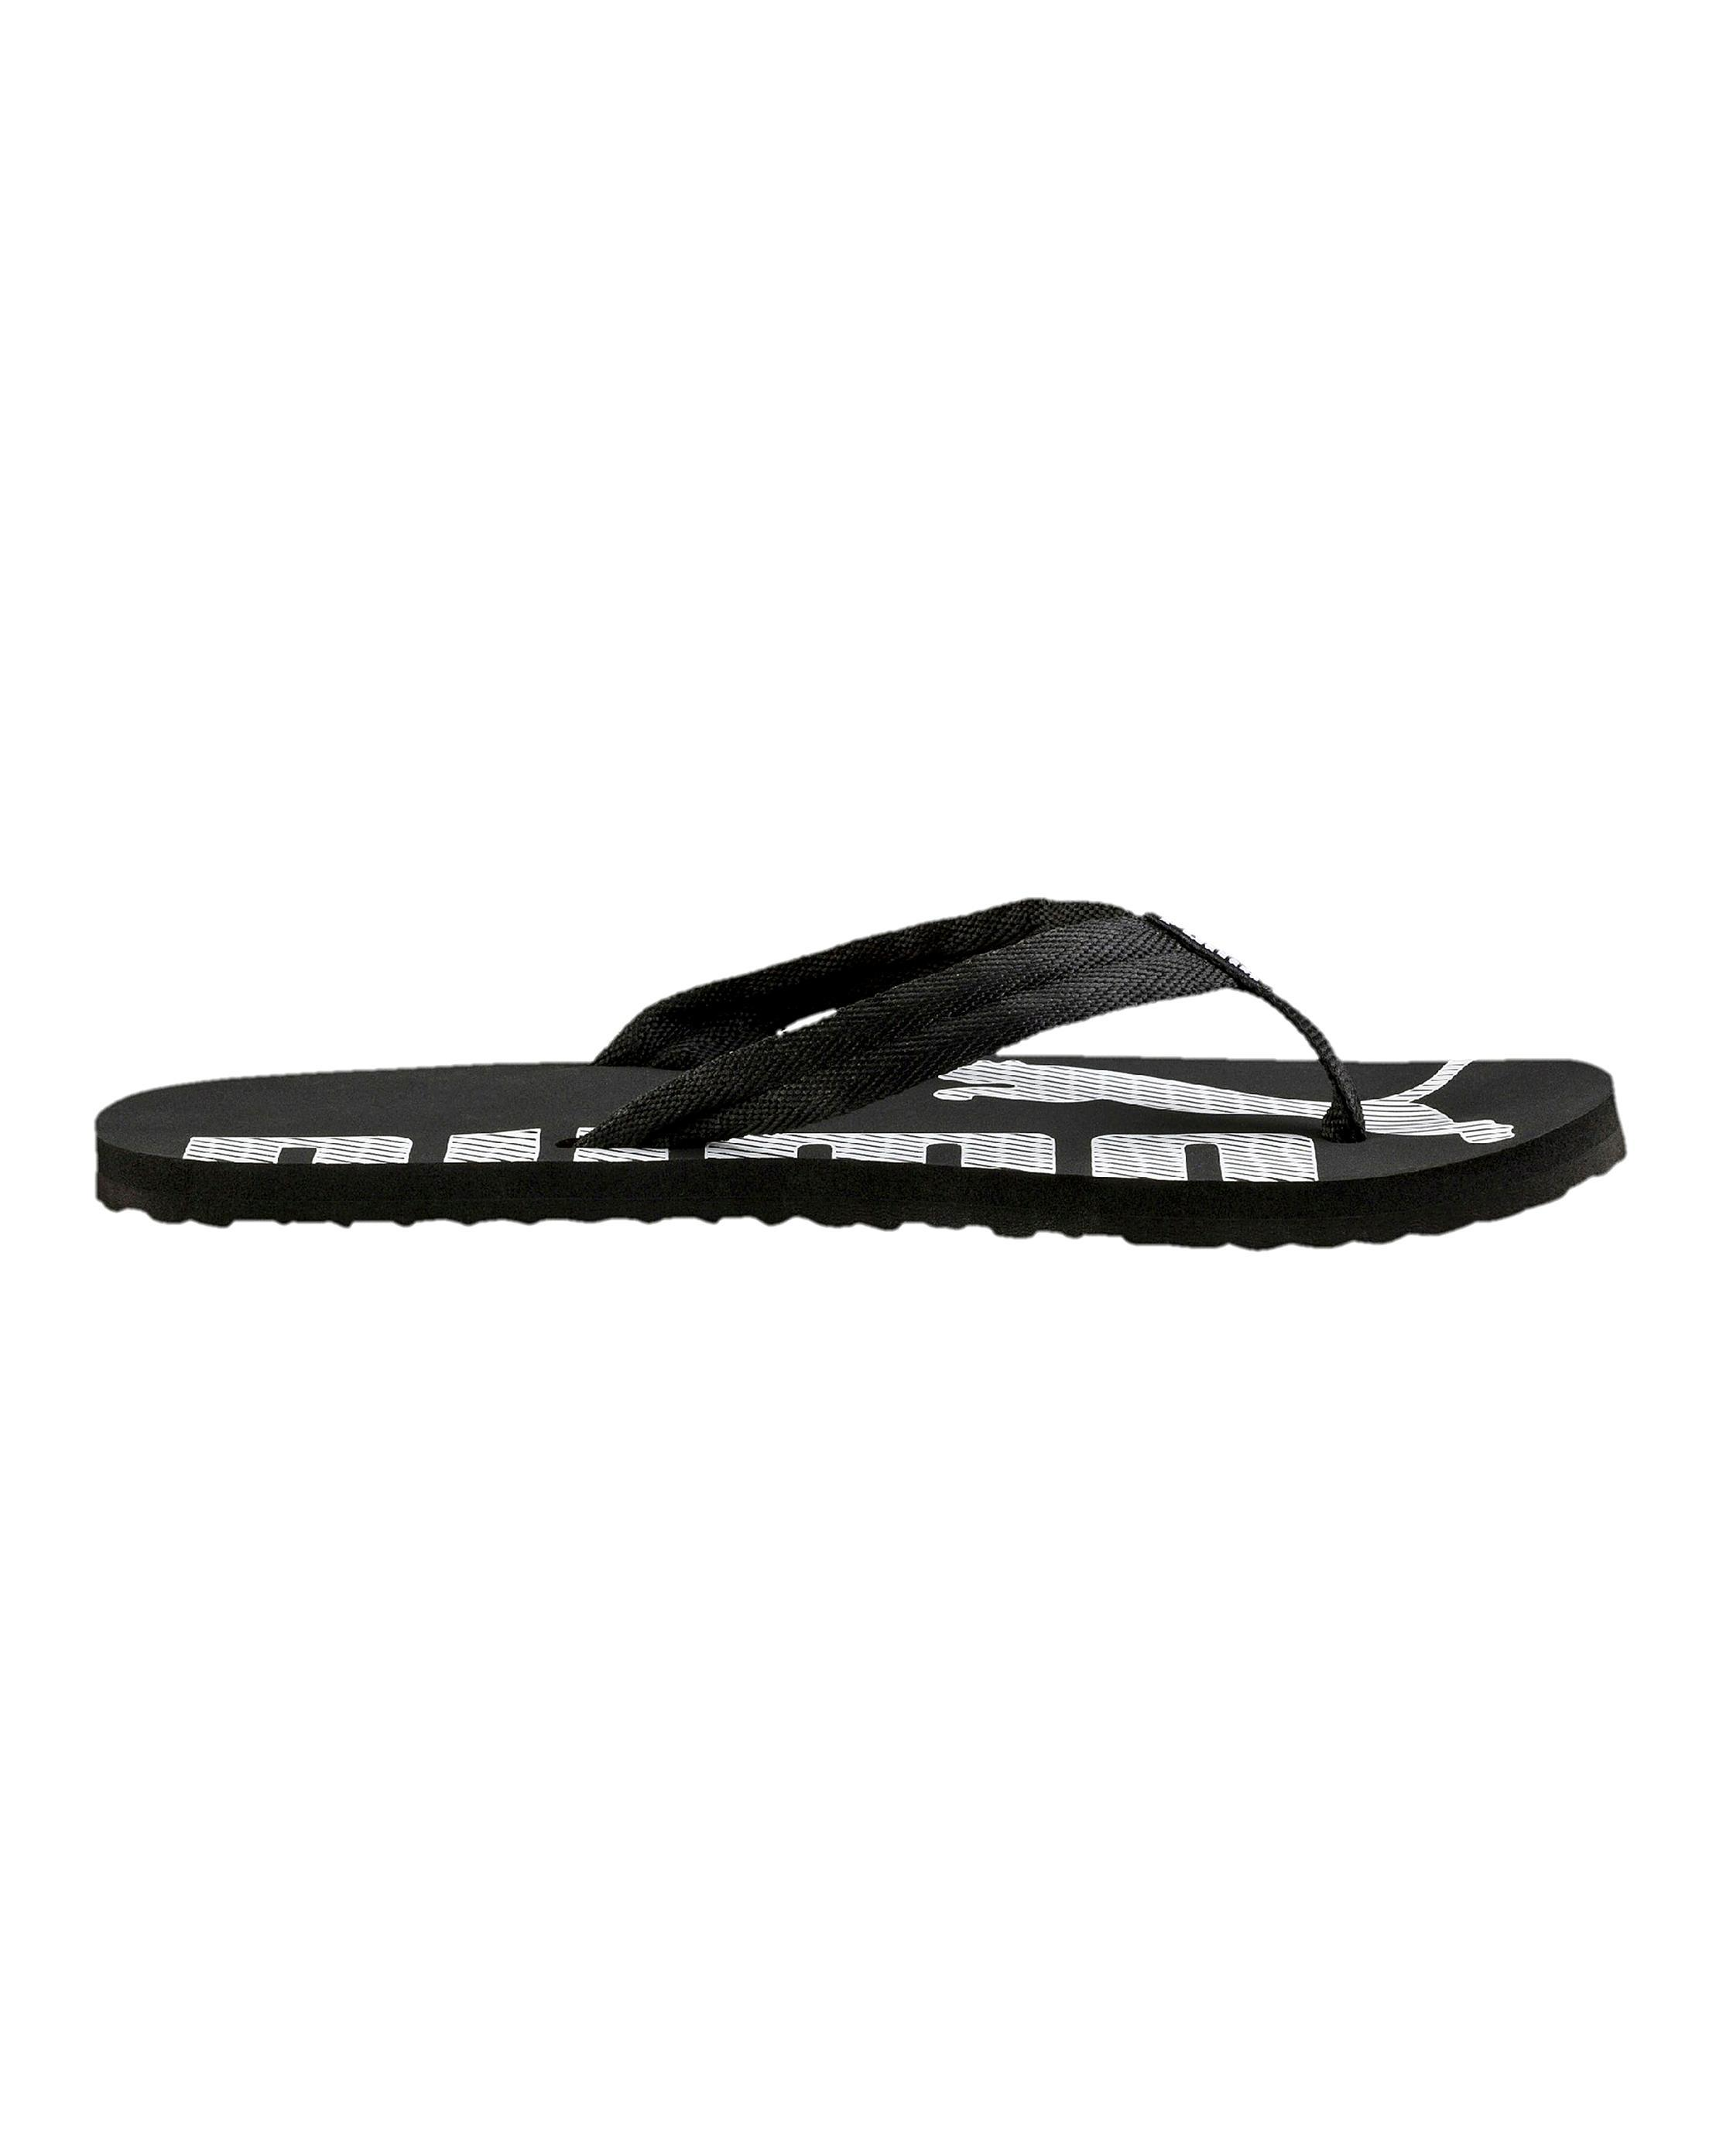 06359b4008865 Lyst - Simply Be Puma Epic Flip Flop in Black for Men